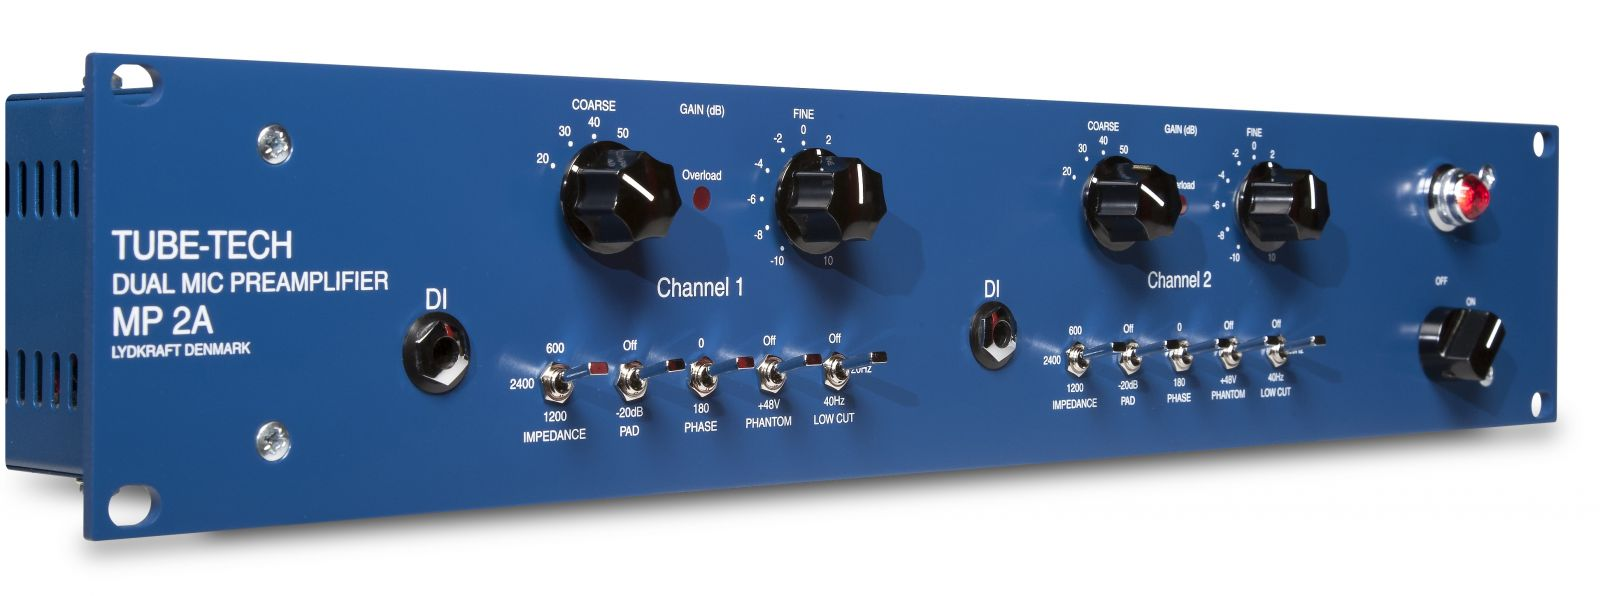 MP2A Dual Mic Preamplifier and DI – TUBE-TECH